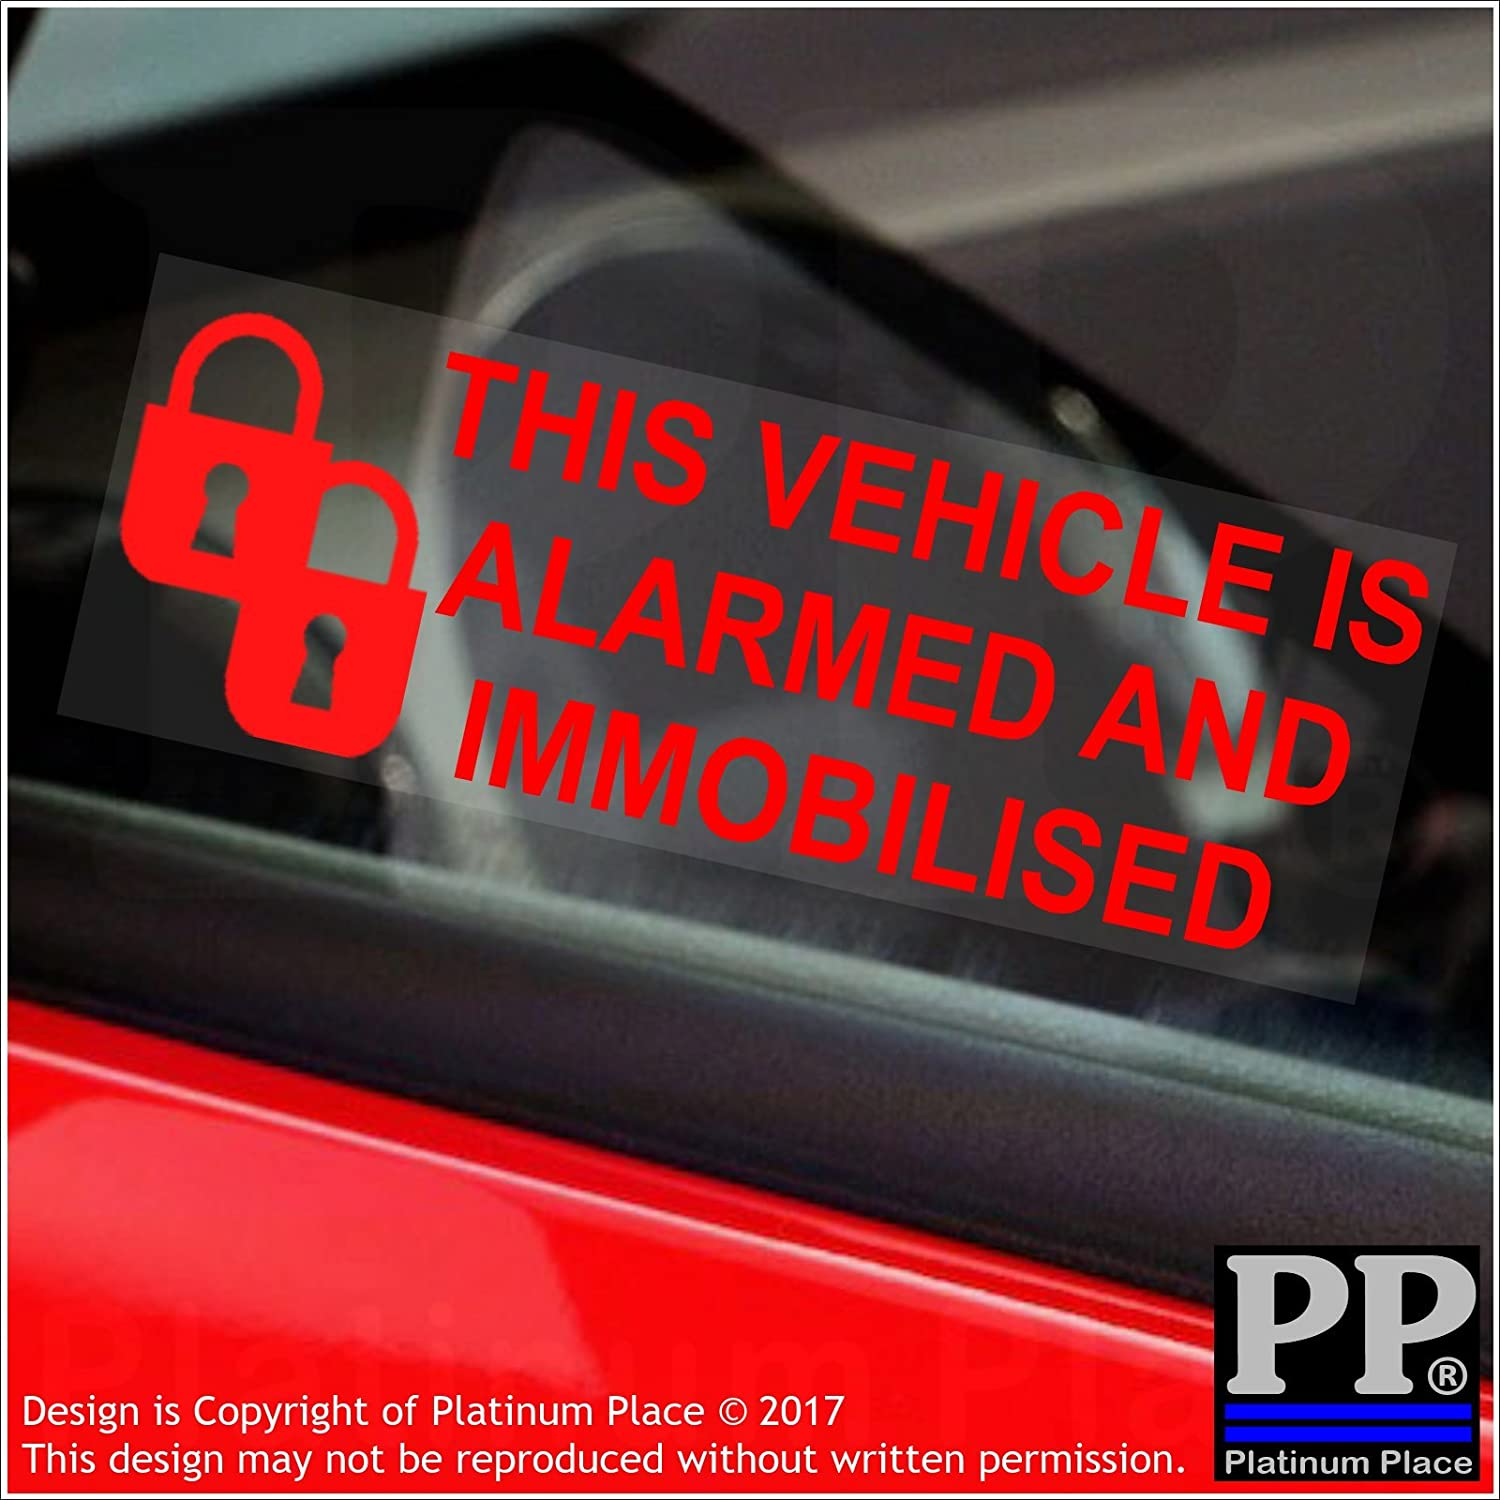 5 x Alarm and Immobiliser Fitted Stickers-PADLOCK-RED onto CLEAR-Alarmed and Immobilised Security Warning Window Signs-Car,Van,Truck,Caravan,Motorhome,Lorry,Taxi,Minicab,Automobile,Notice